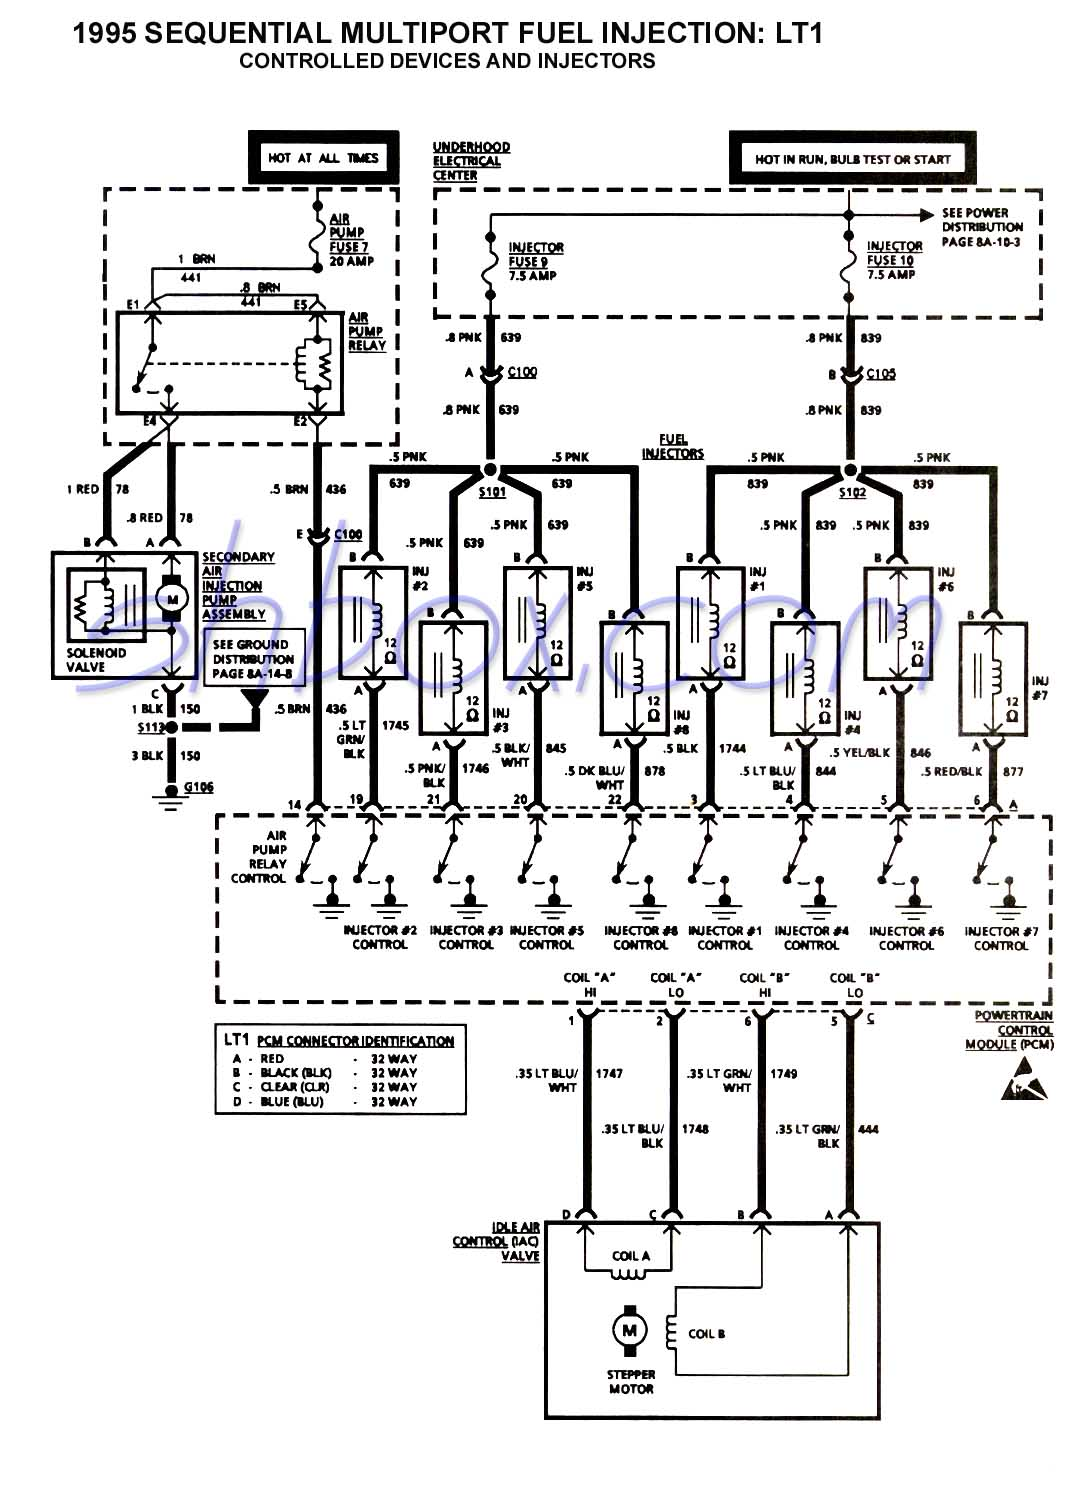 94 lt1 pcm wiring diagram